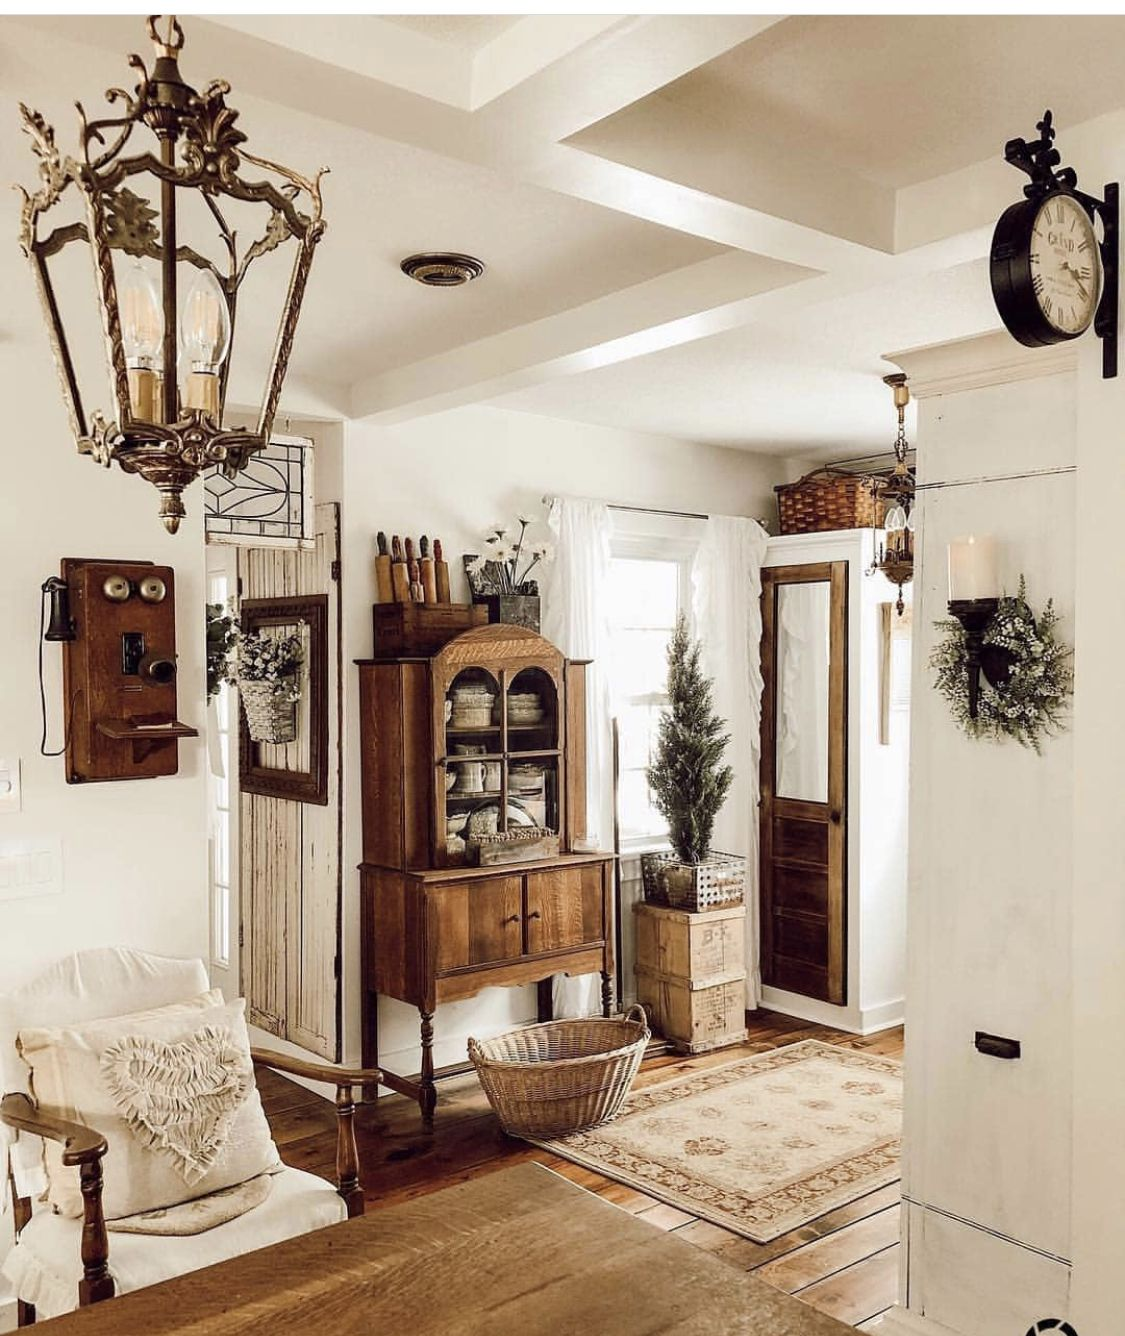 46 Fabulous Country Kitchen Designs Ideas: Pin By Catherine Gillman On There's No Place Like Home